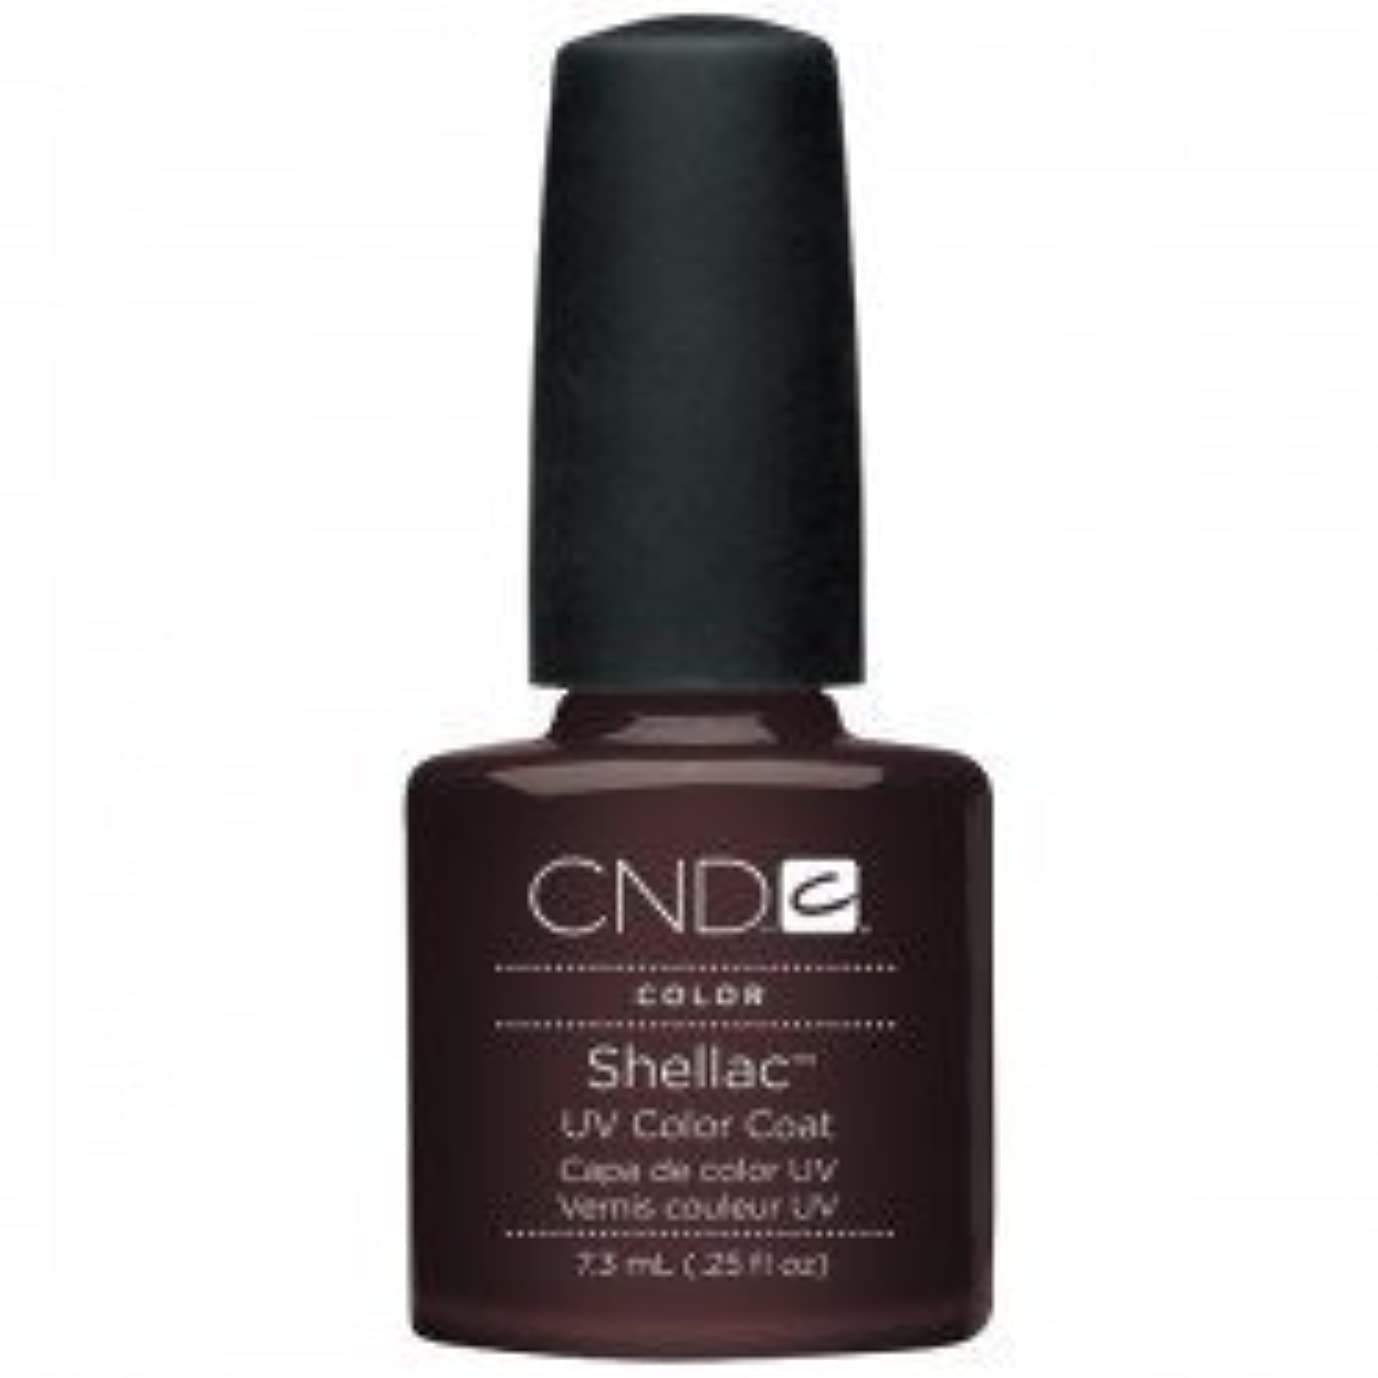 退屈させるスクレーパーペネロペNew CND Creative Shellac UV3 Nail Power Polish - Fedora 7.3ml by CND Creative Nail Designs